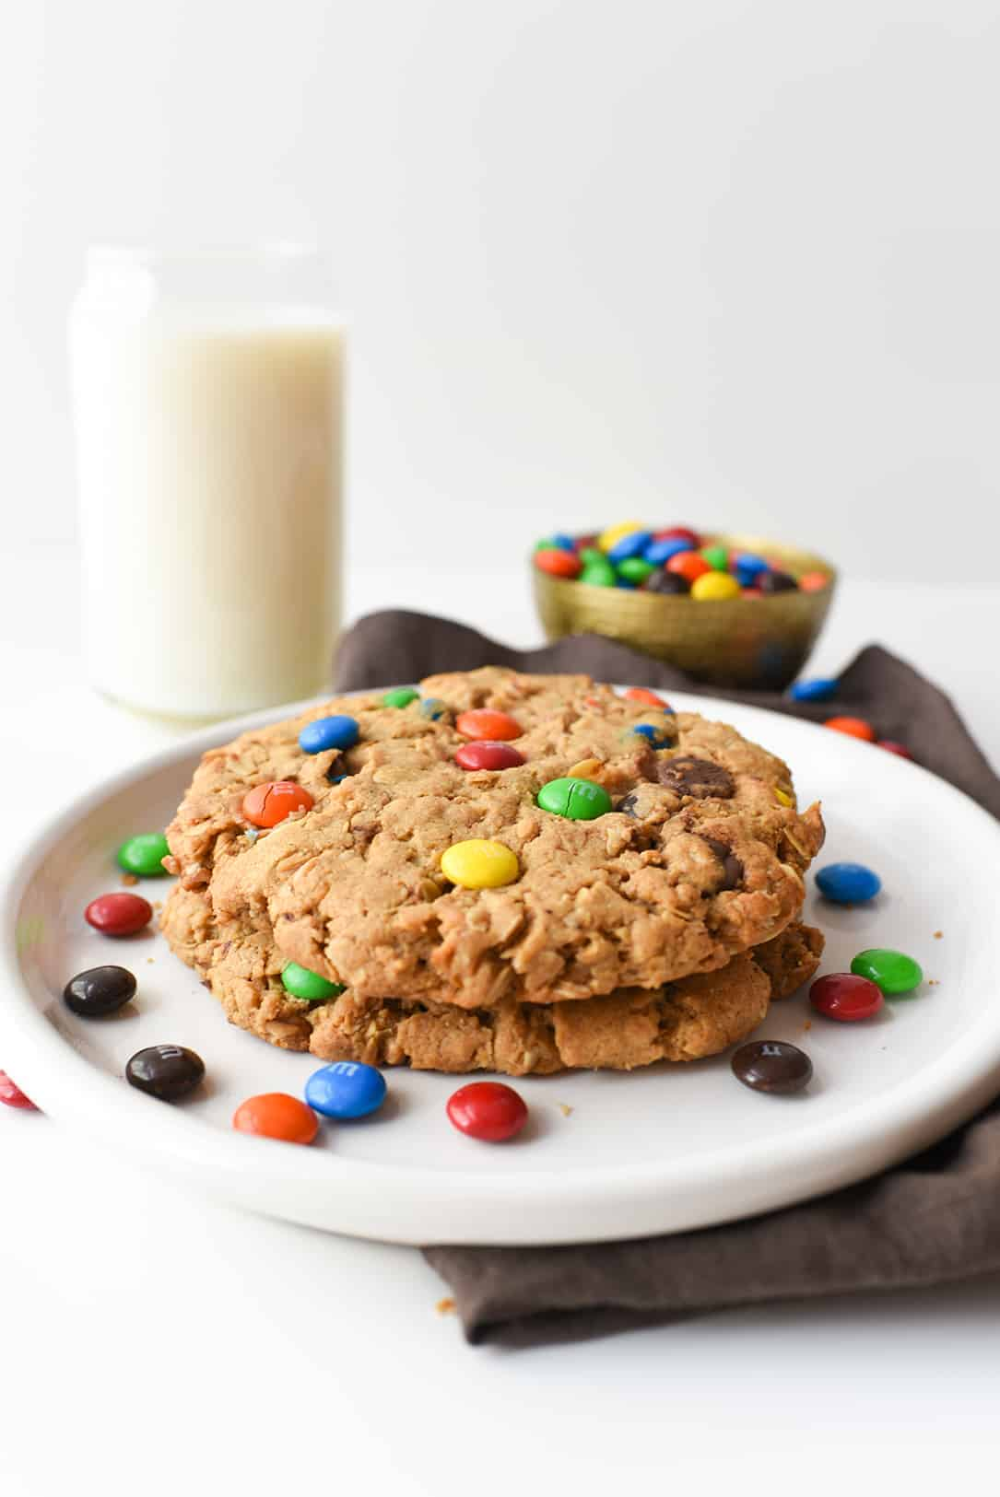 This classic recipe is kicked up a notch and made GIANT! Peanut butter and M&M's work together to create the best cookie recipe ever!